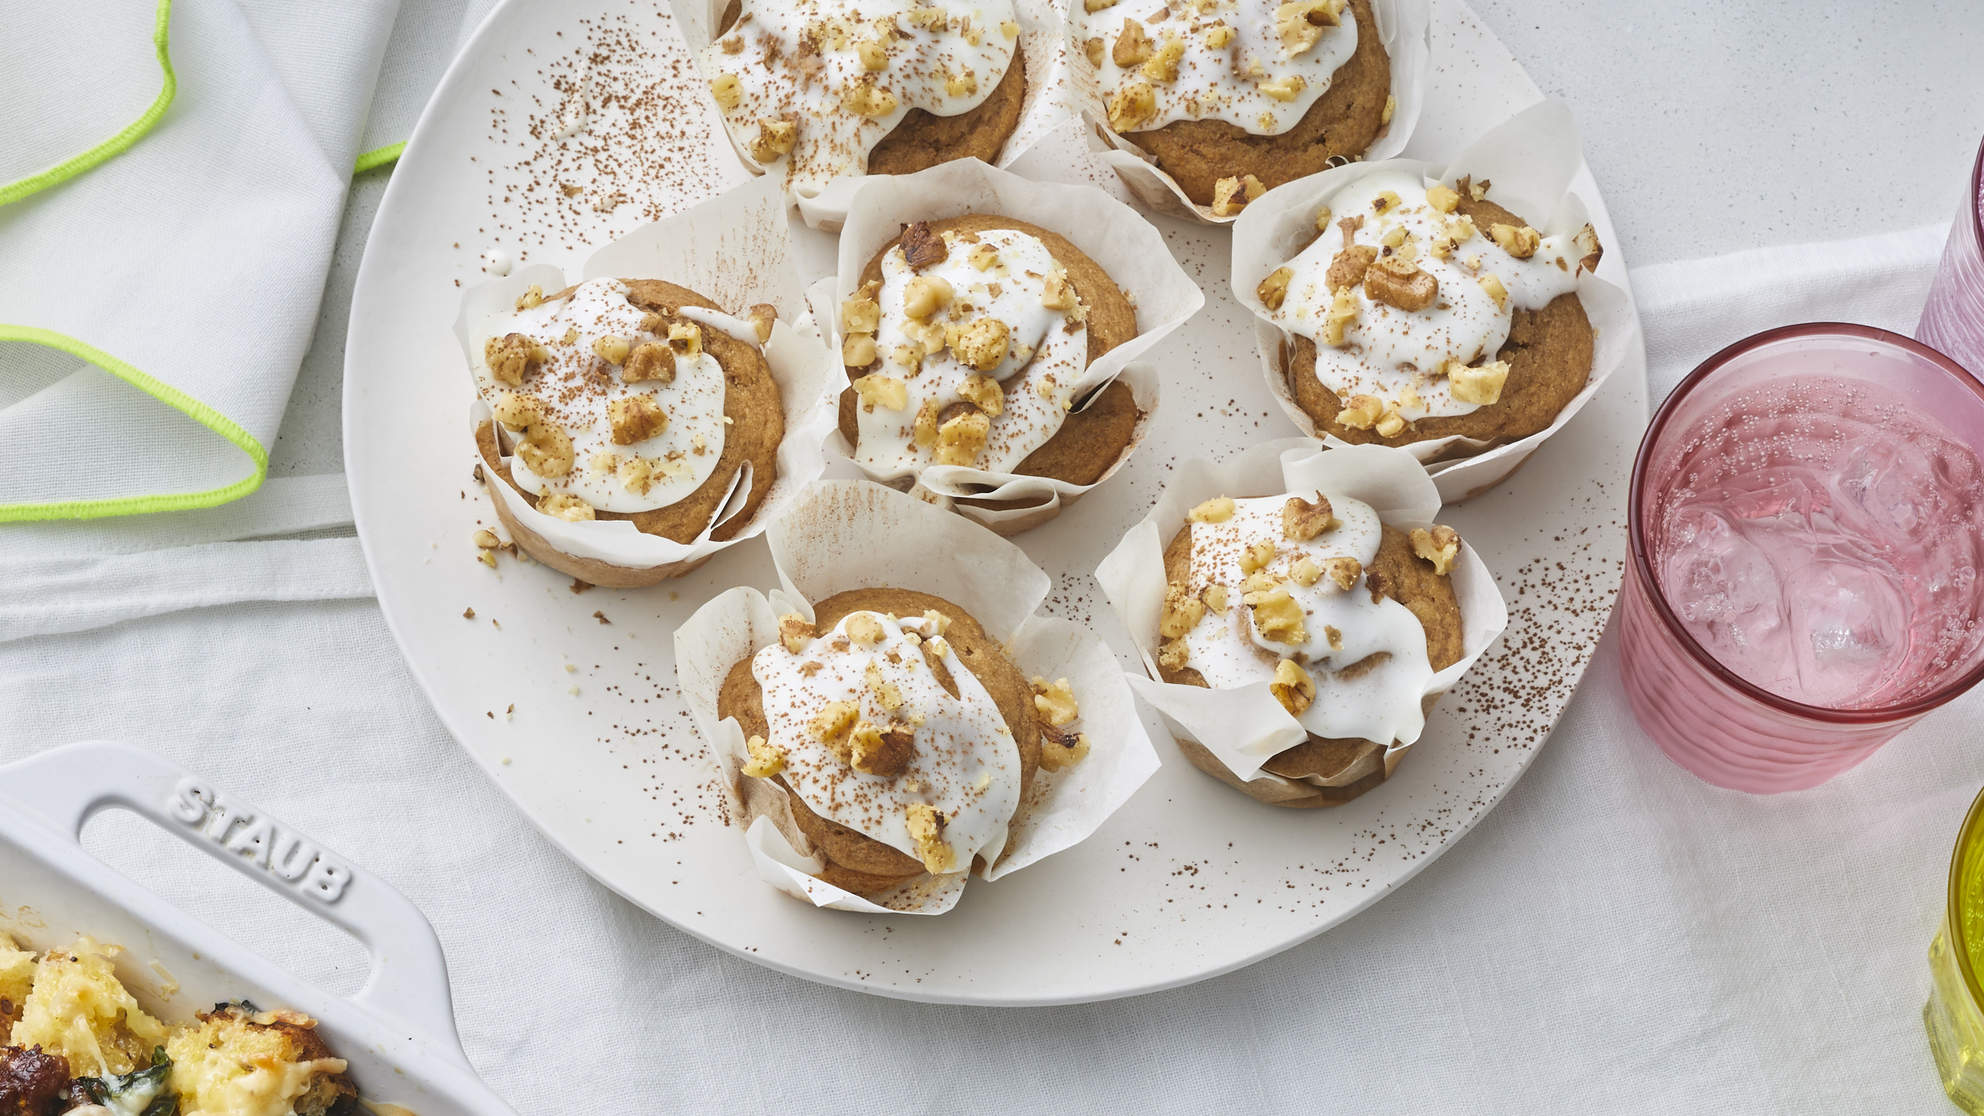 cinnamon-roll-muffins-brunch-recipes-health-mag-december-2019